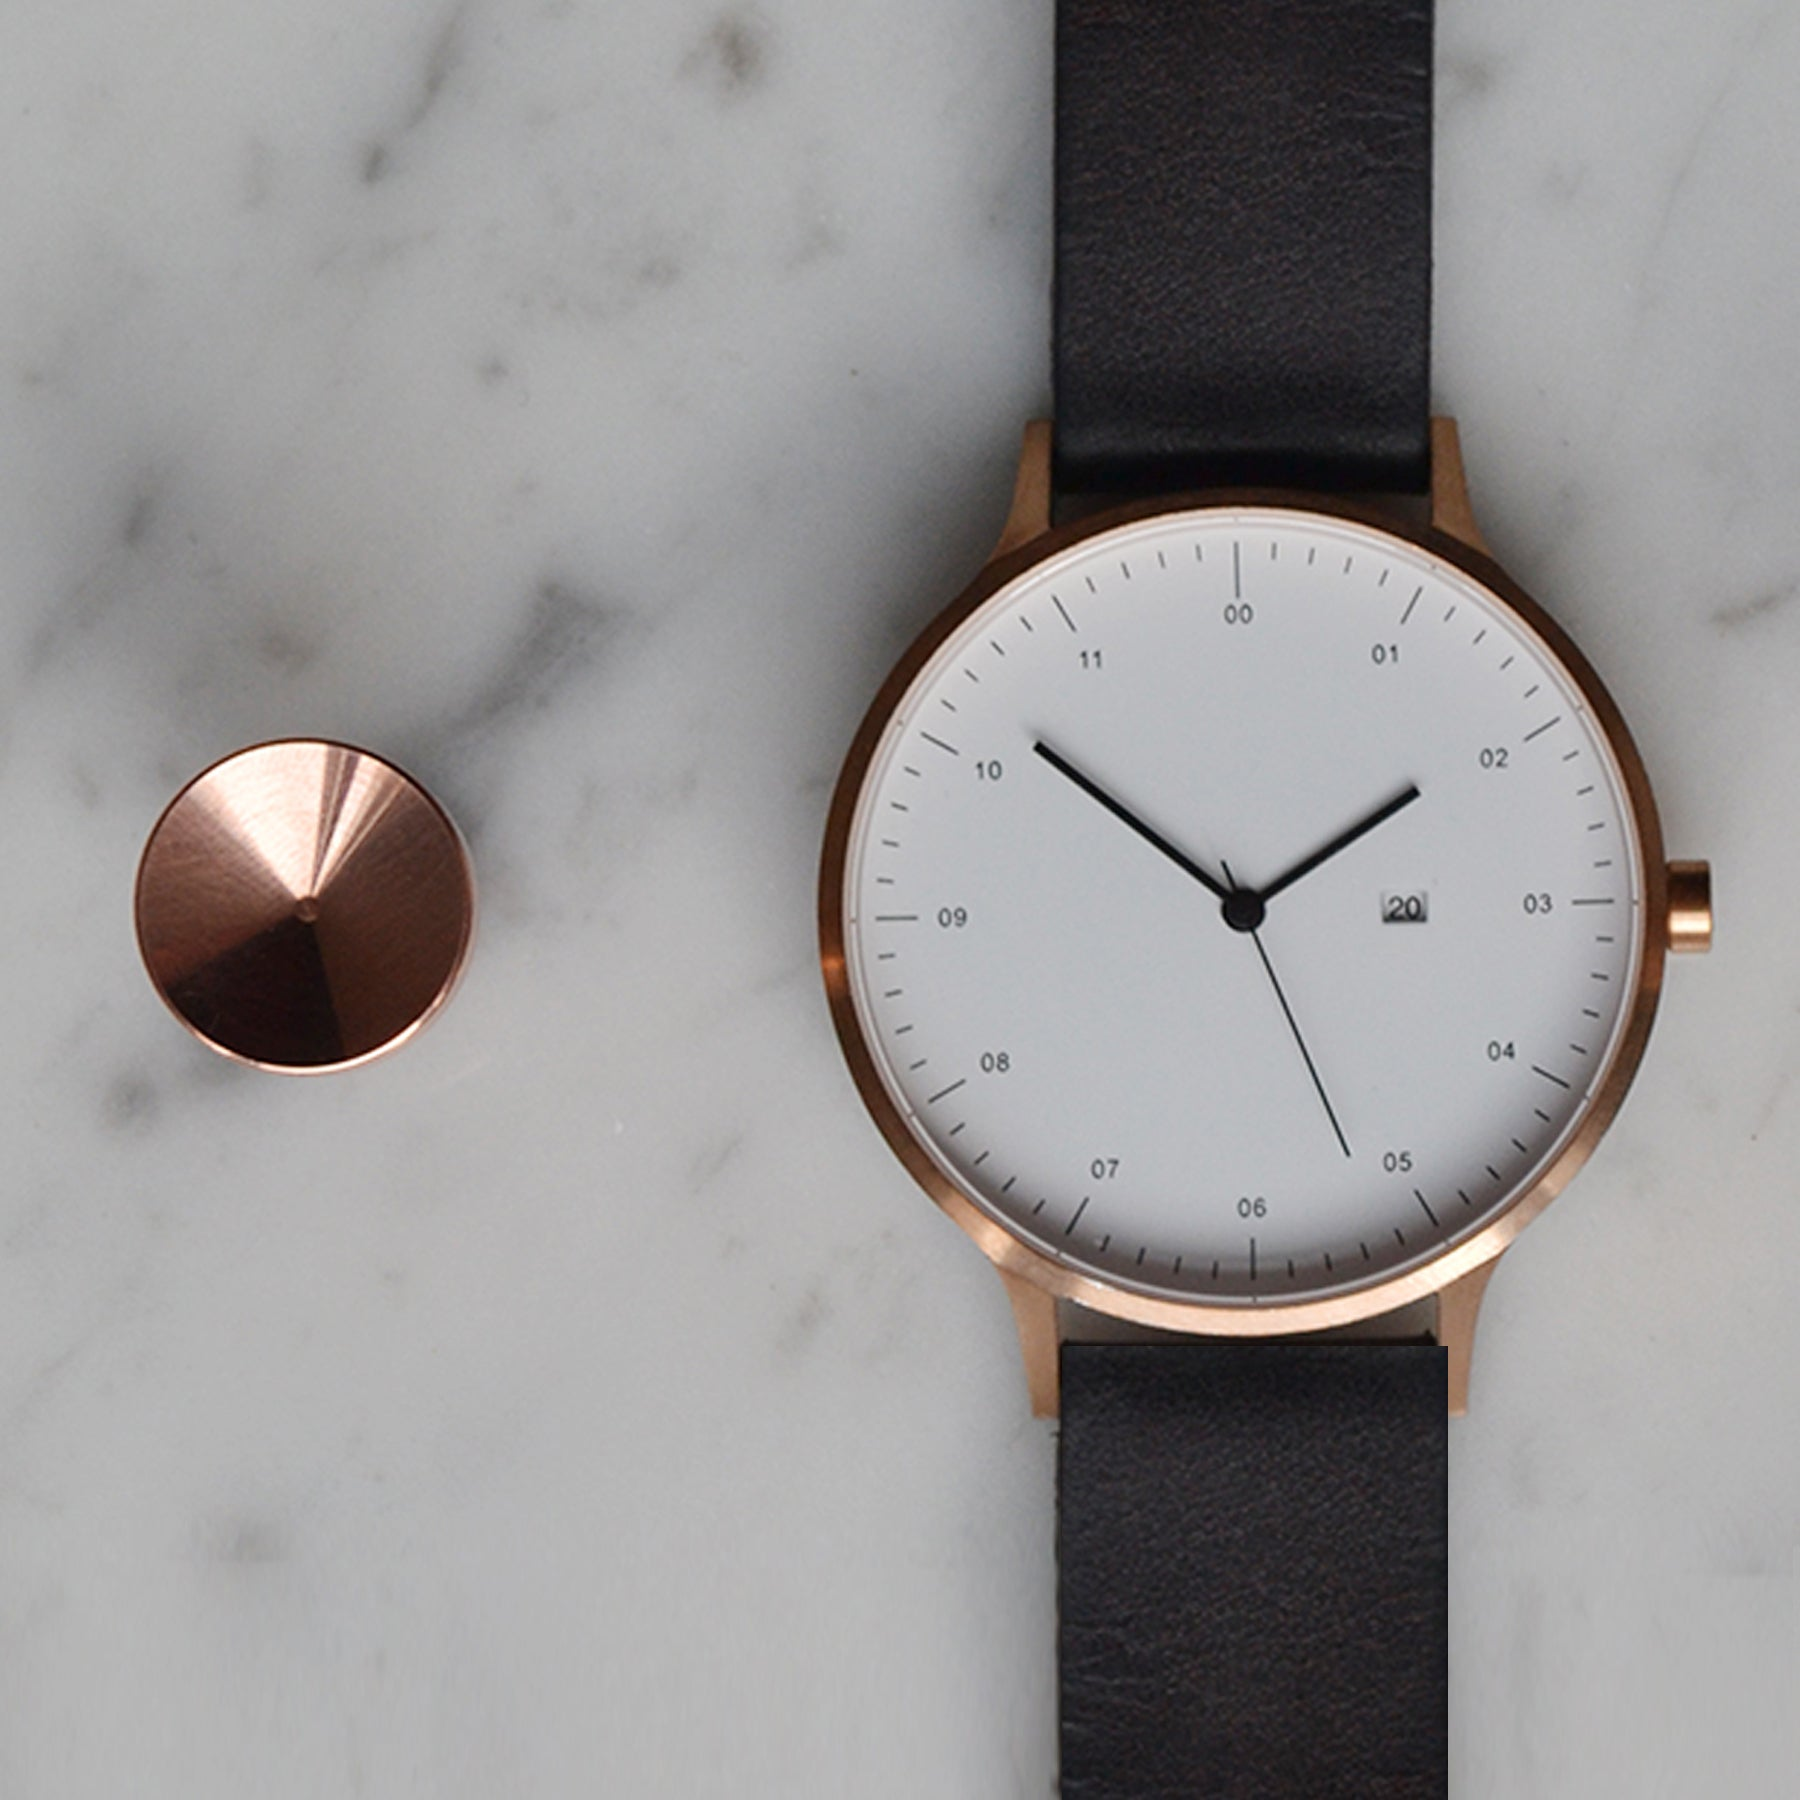 Copper cufflinks | Alice Made This | Instrmnt